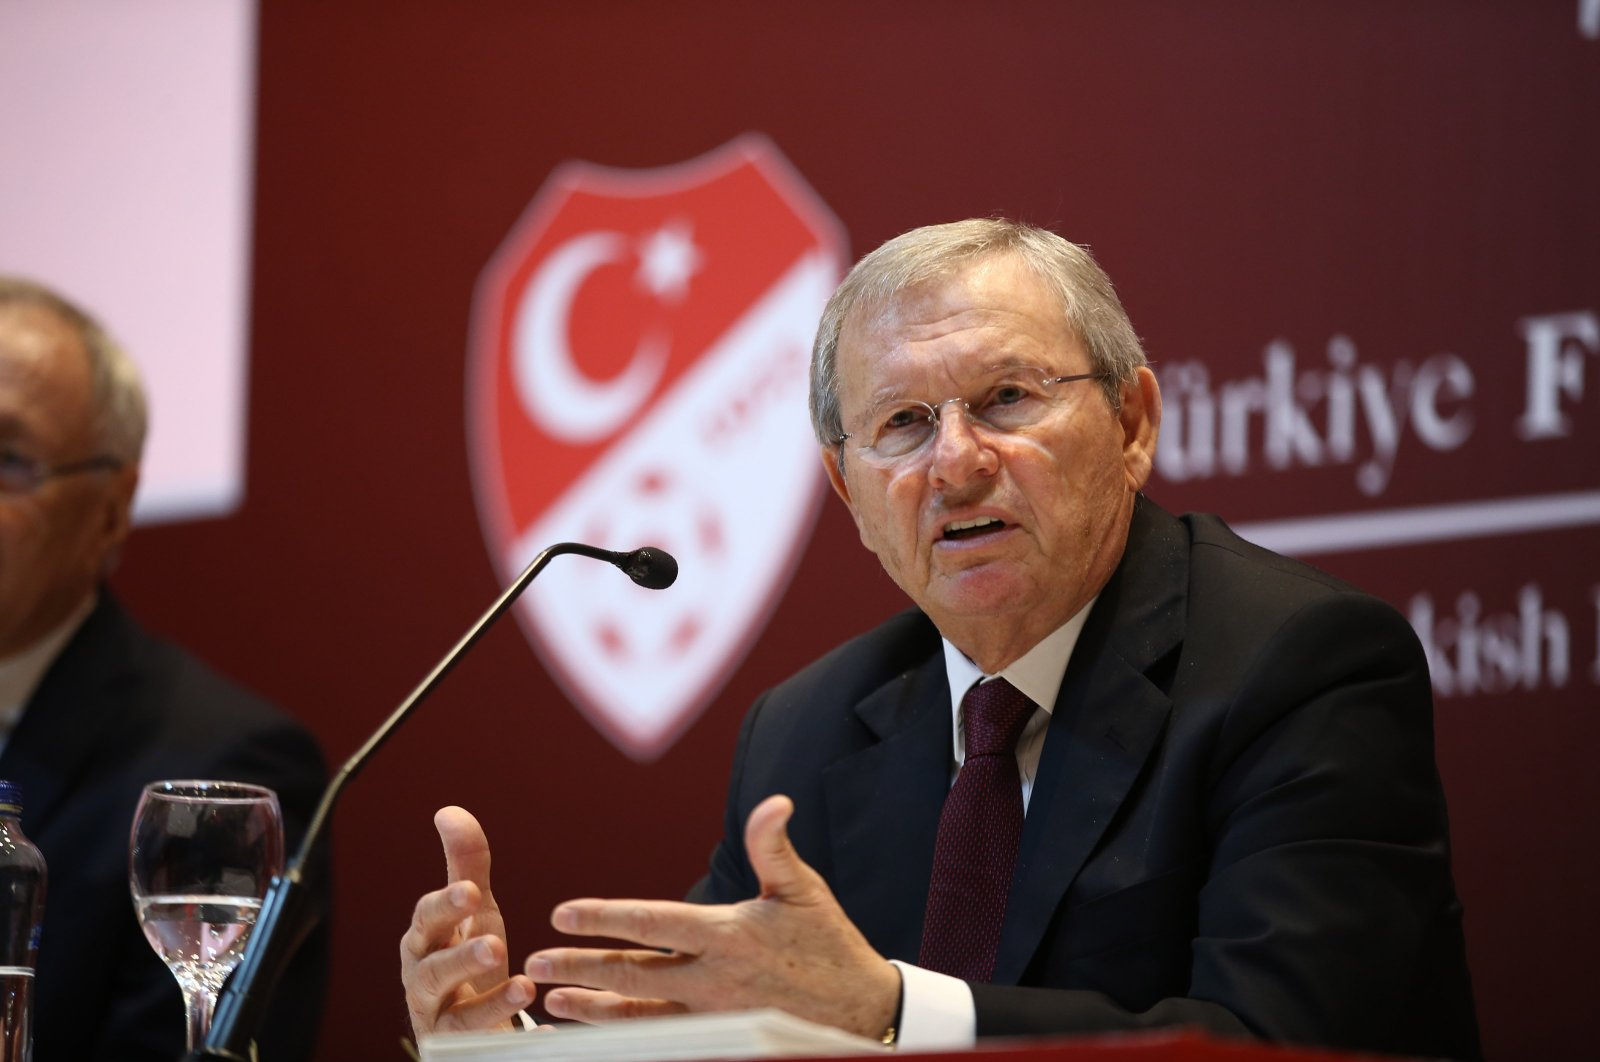 Zekeriya Alp during a press conference in Istanbul, Turkey, May 7, 2020. (AA Photo)